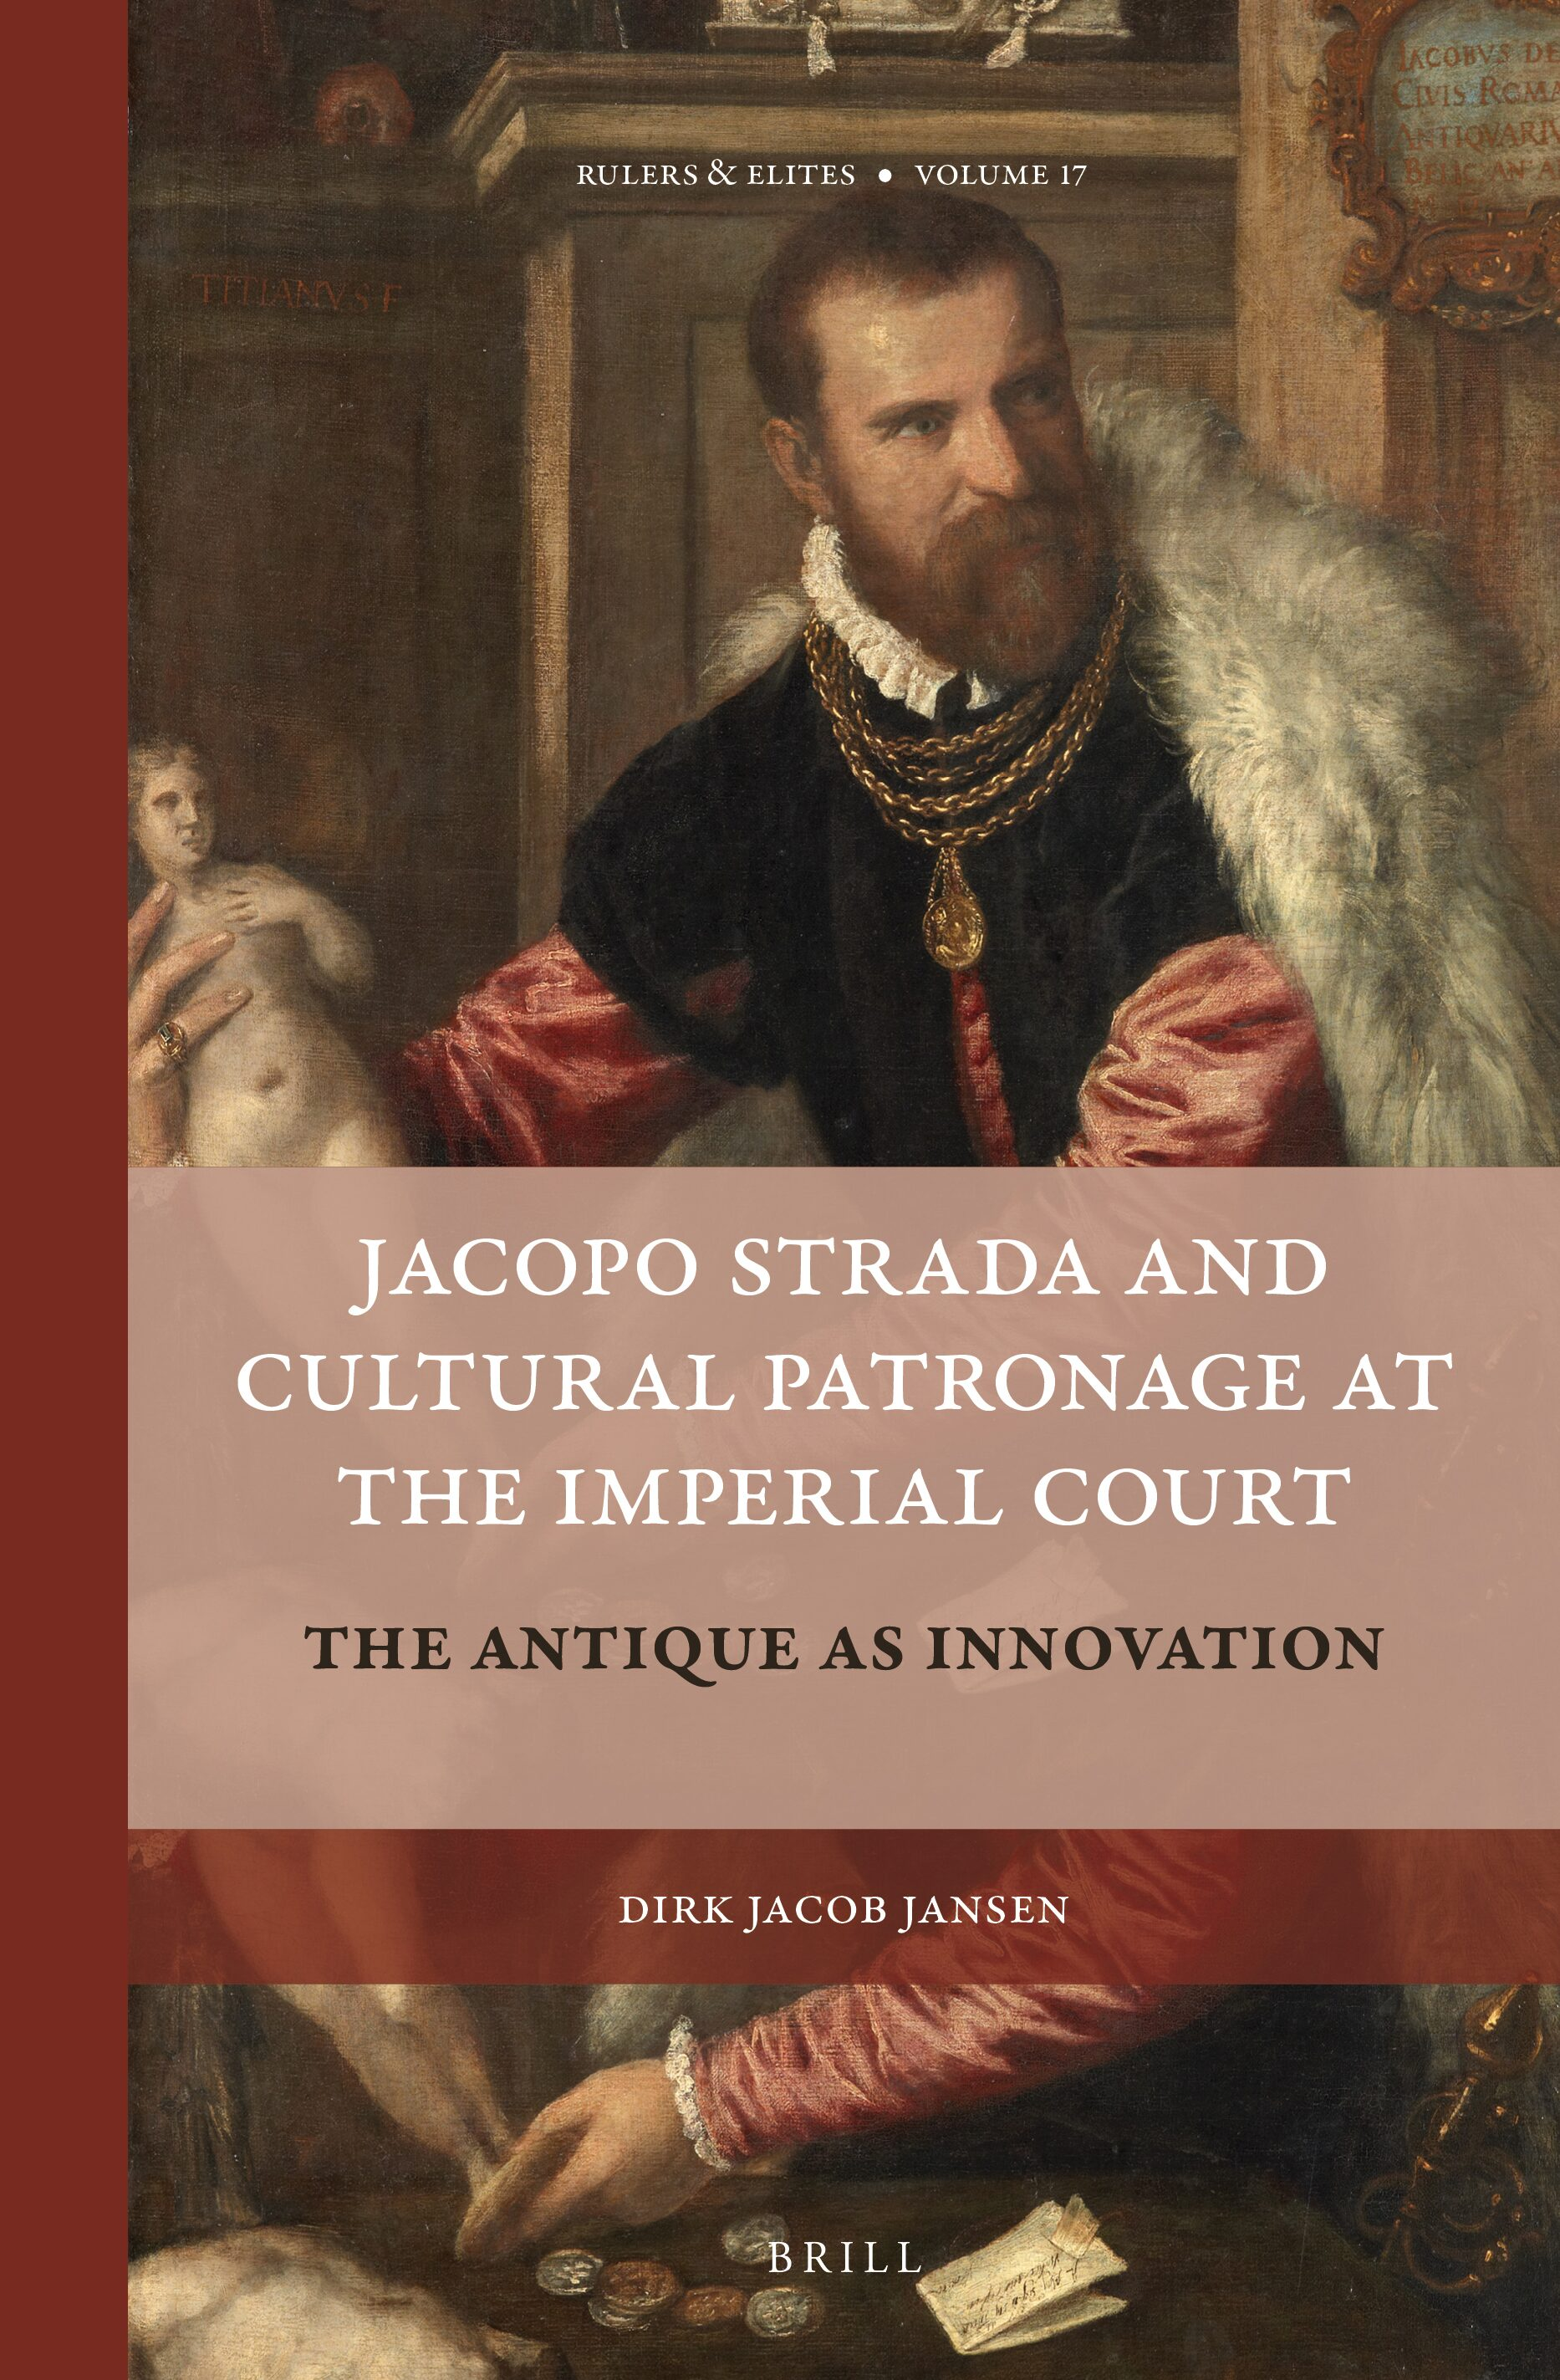 Bibliography In Jacopo Strada And Cultural Patronage At The Imperial Court 2 Vols